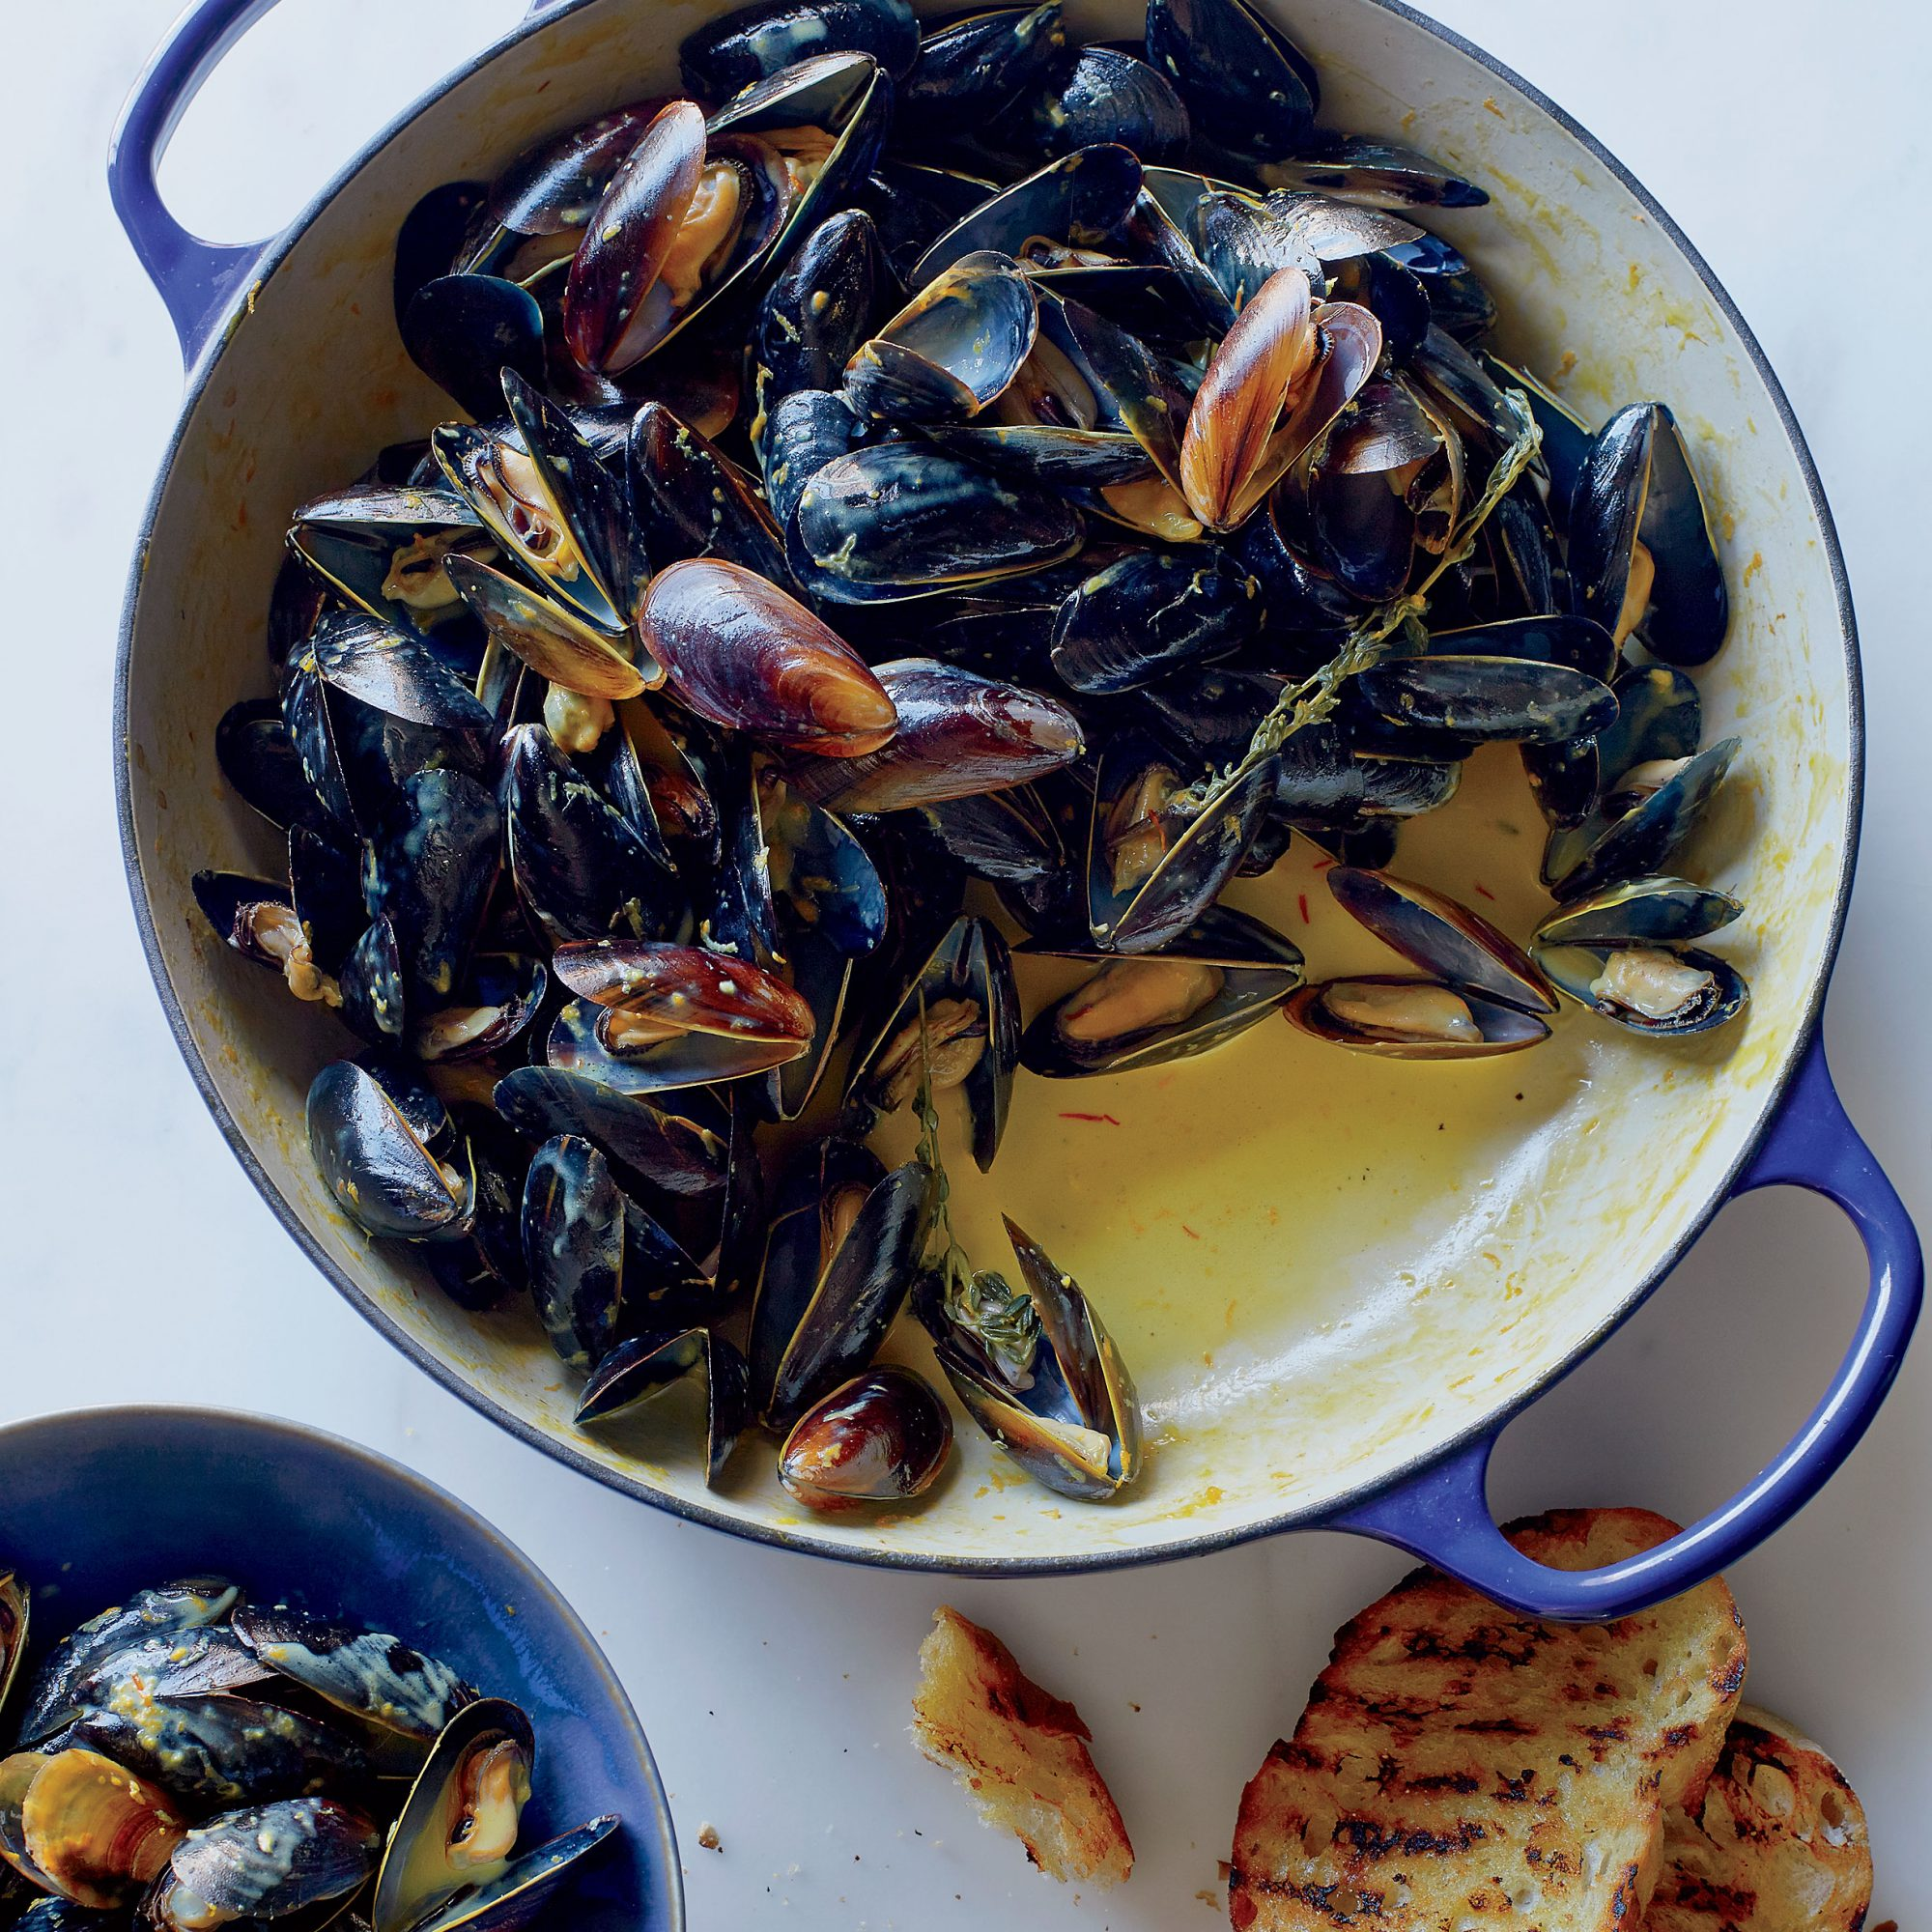 Mussels in a Saffron Citrus Cream Sauce